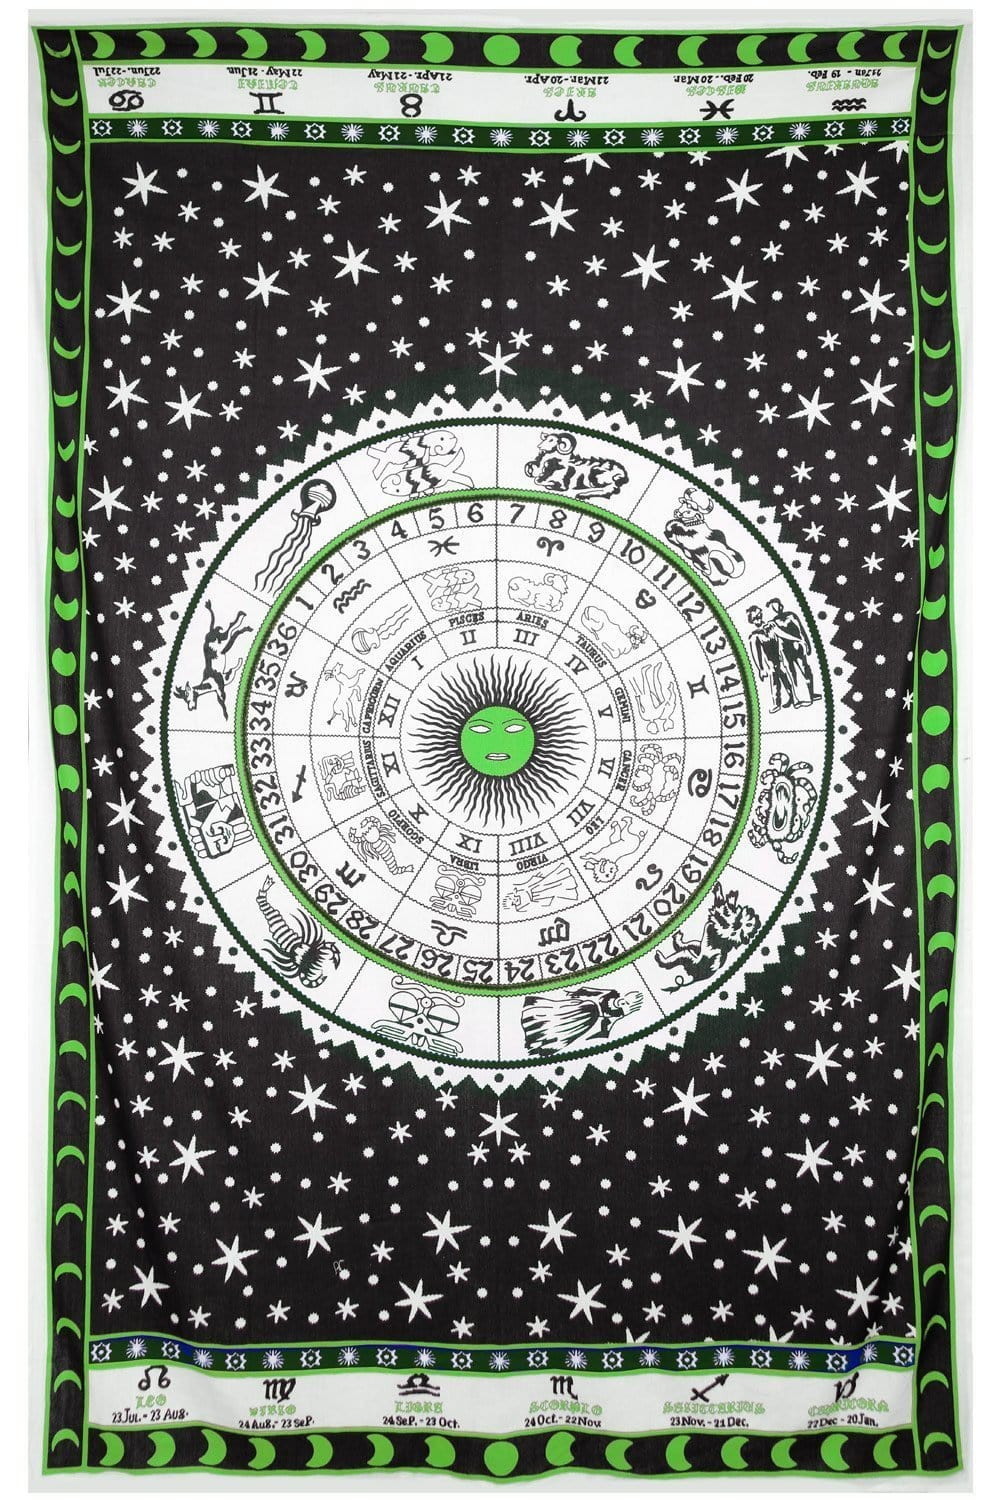 Tapestries Zodiac Astrology - Green - Tapestry 100022